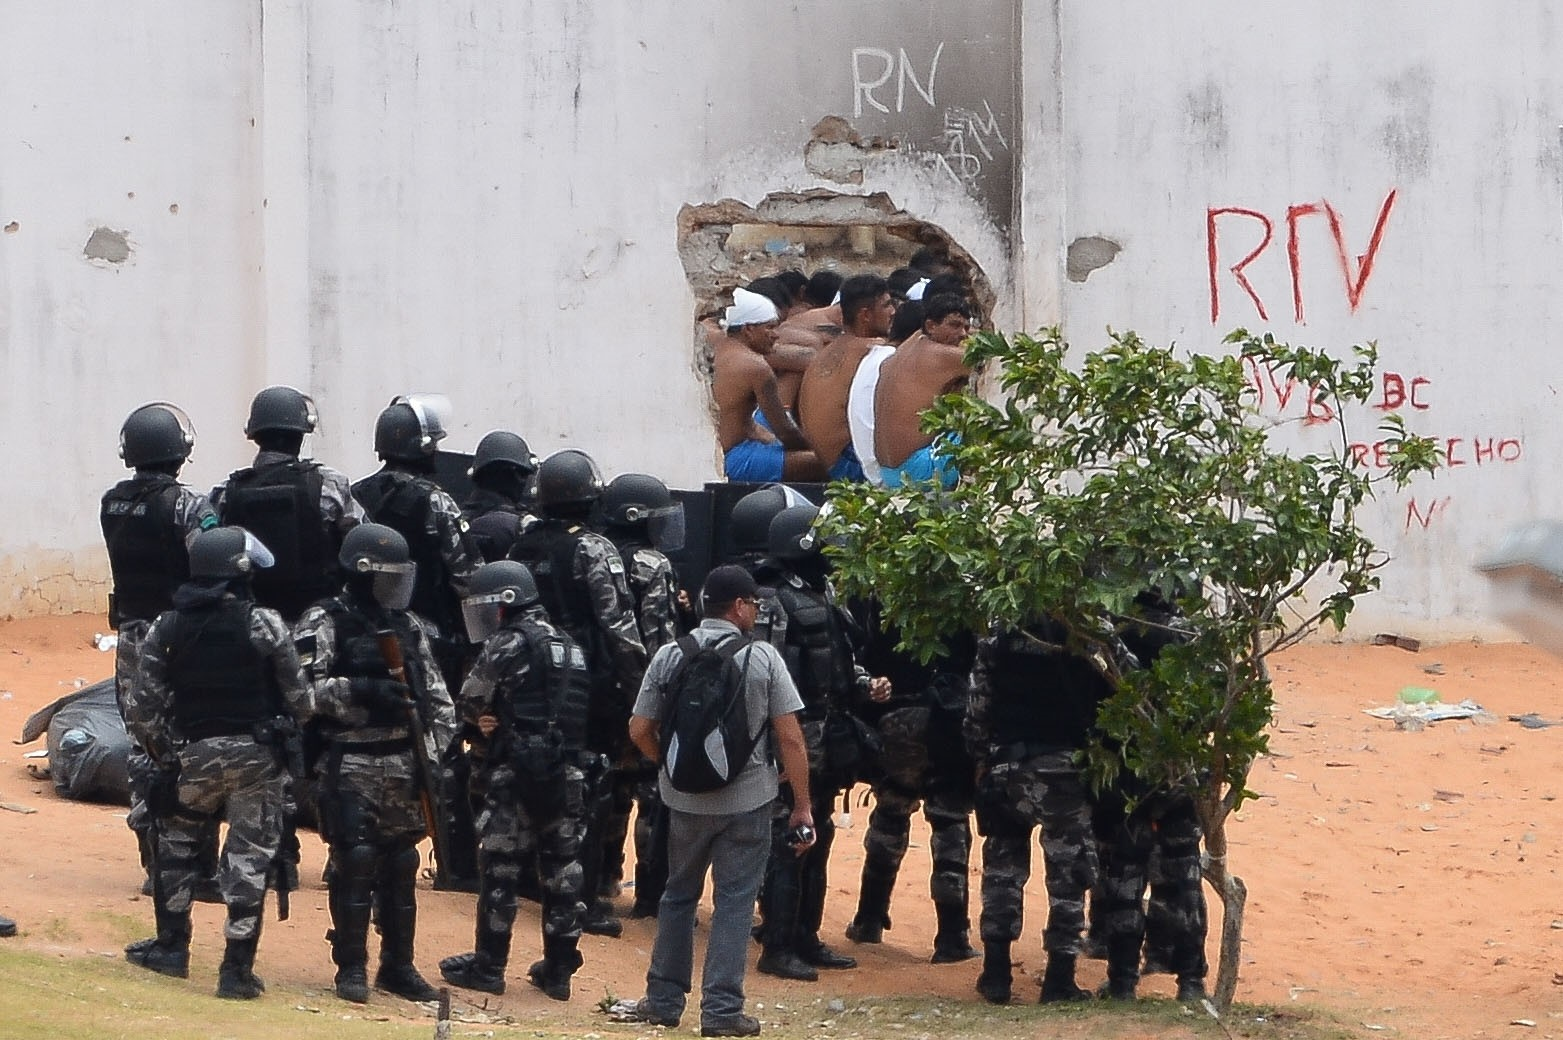 Riot police enter the Alcacuz Penitentiary Center near Natal to regain control after a gang confrontation at the prison in Rio Grande do Norte, Brazil on January 21, 2017.  (AFP Photo)